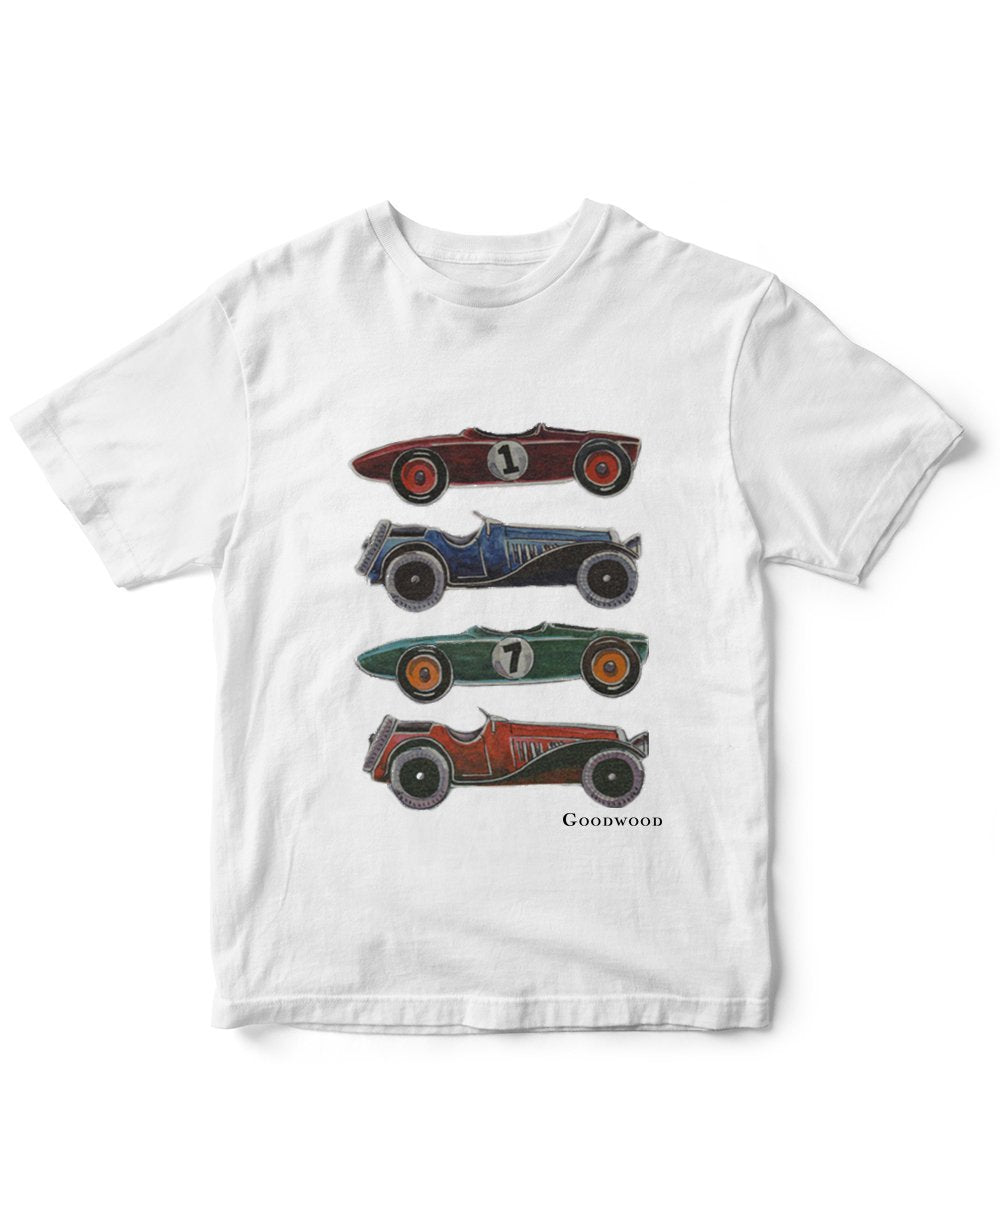 Goodwood Cotton Mens White Cartoon Car T Shirt